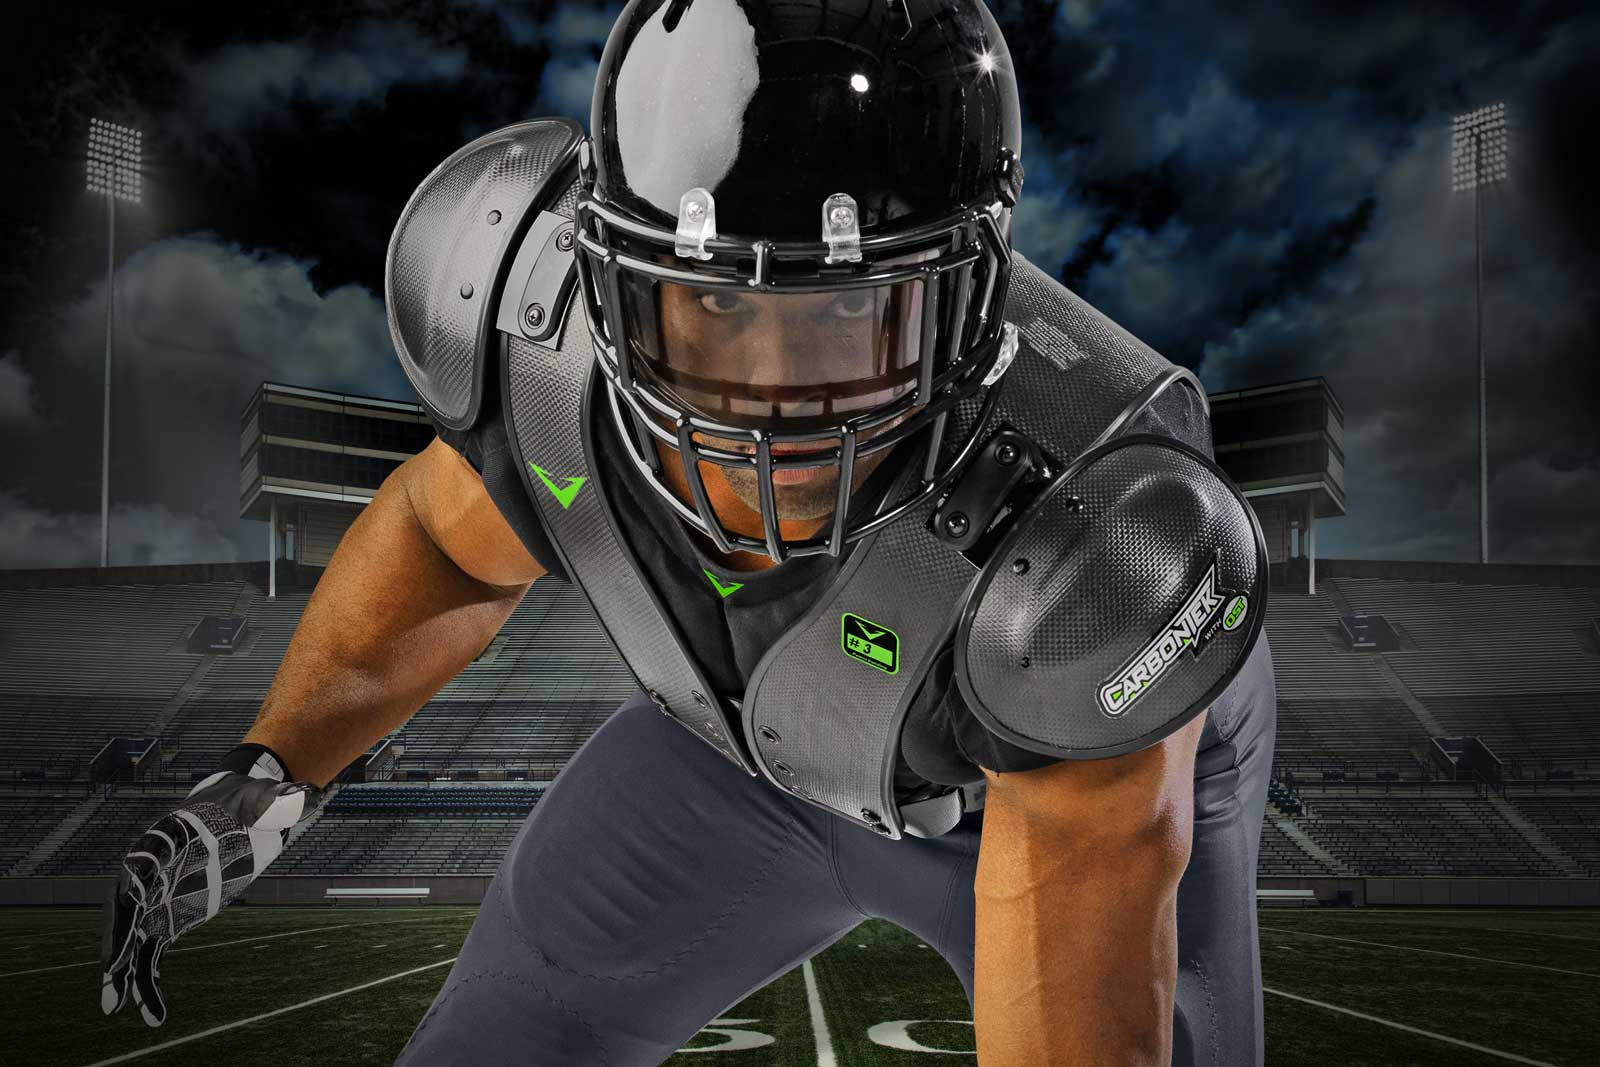 Built for Power - CarbonTek™ Carbon Fiber Football Shoulder Pads